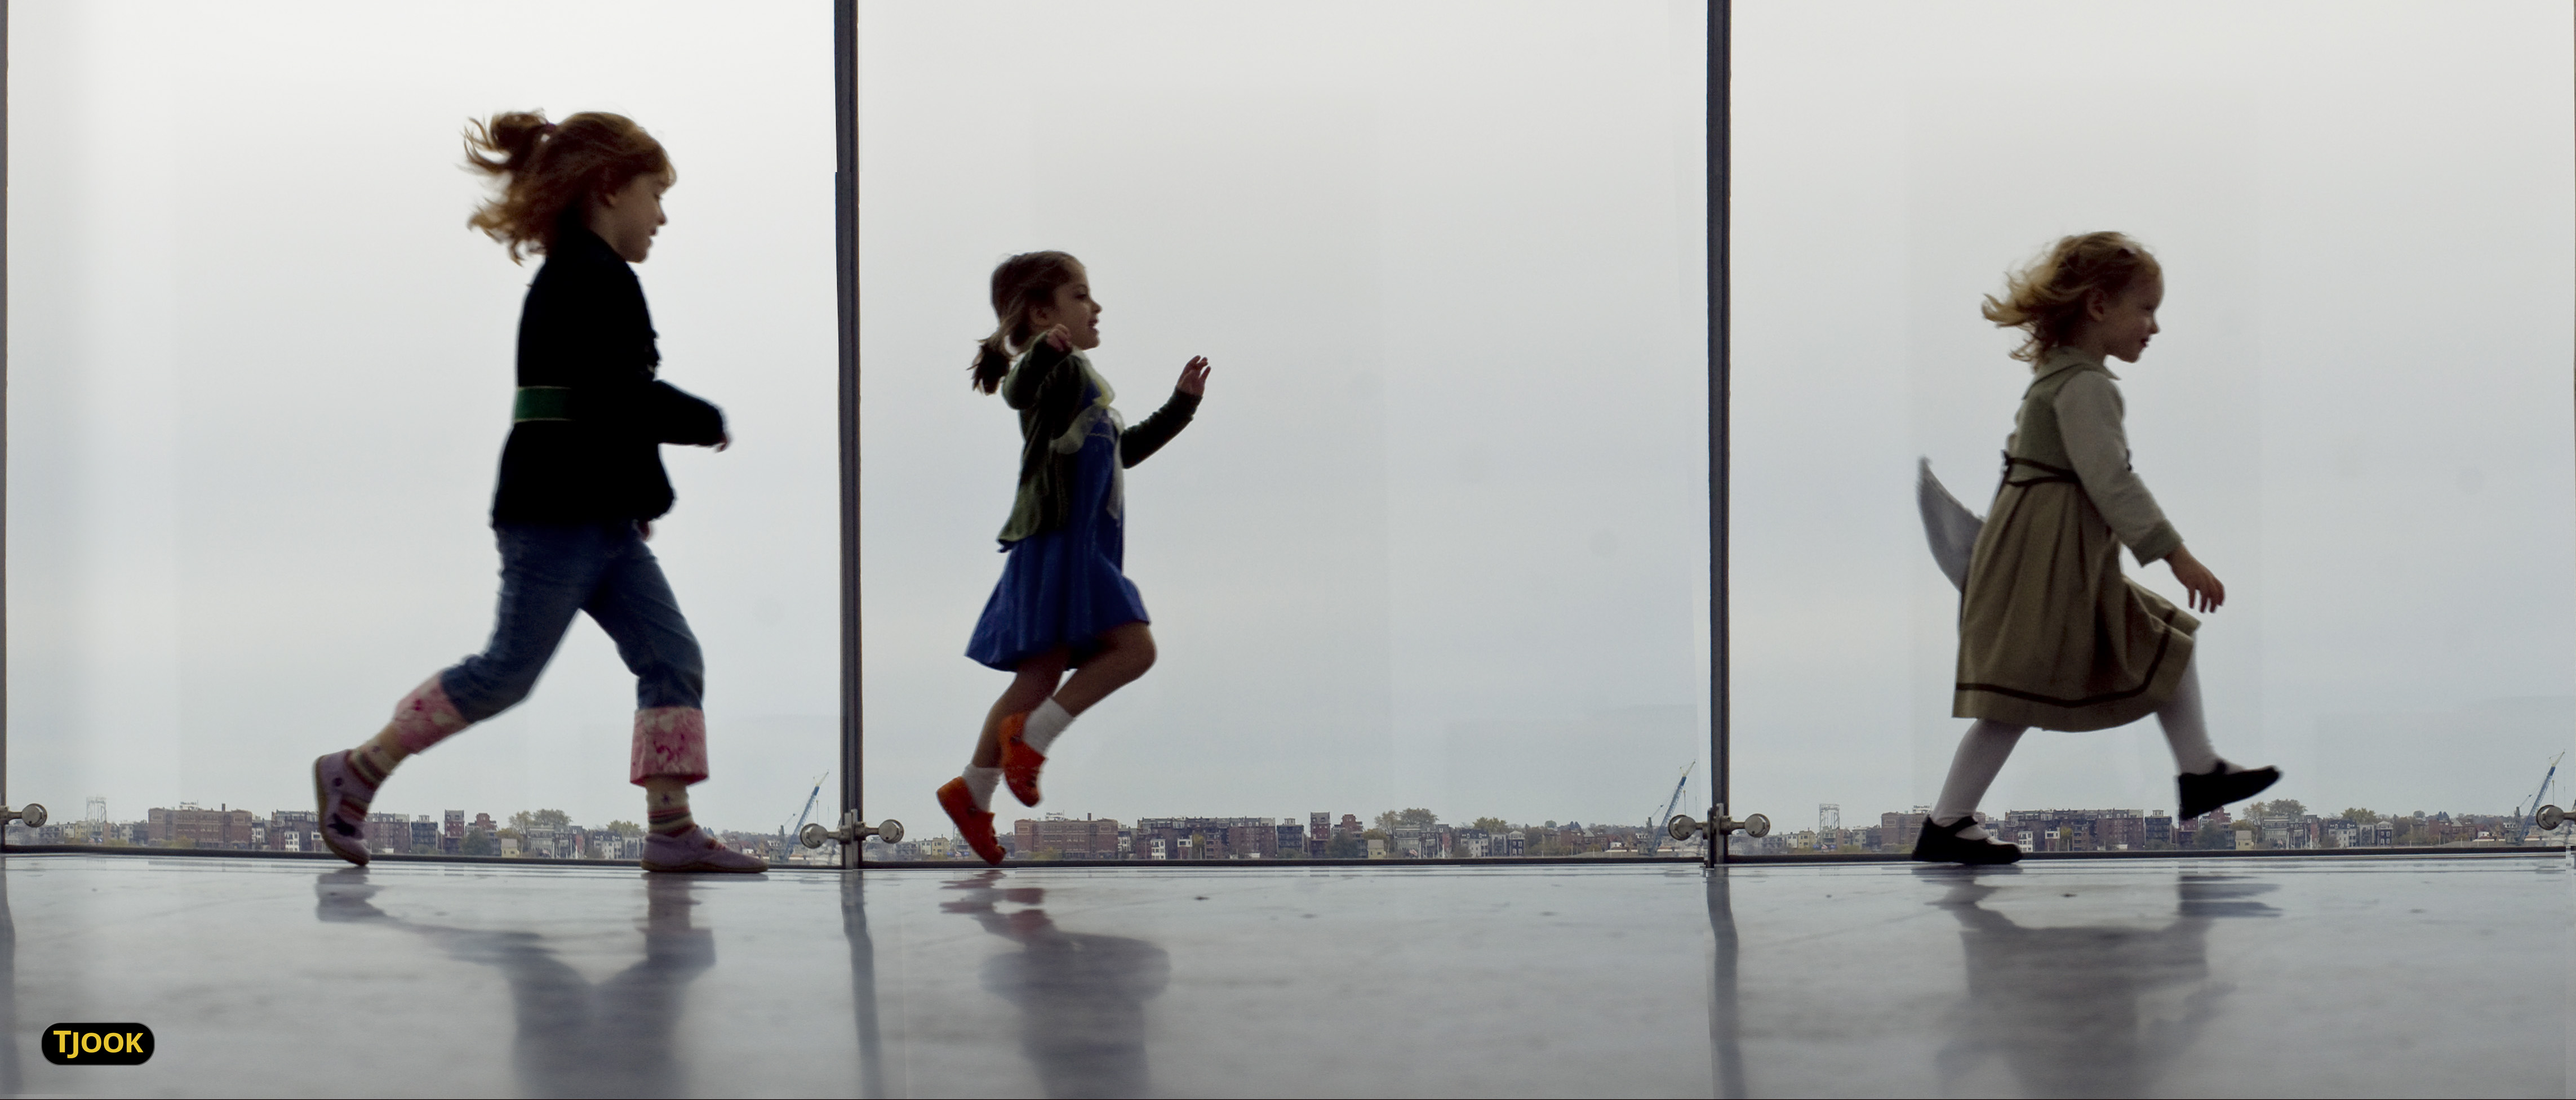 girl-skipping-rope4-photocredit-tjook